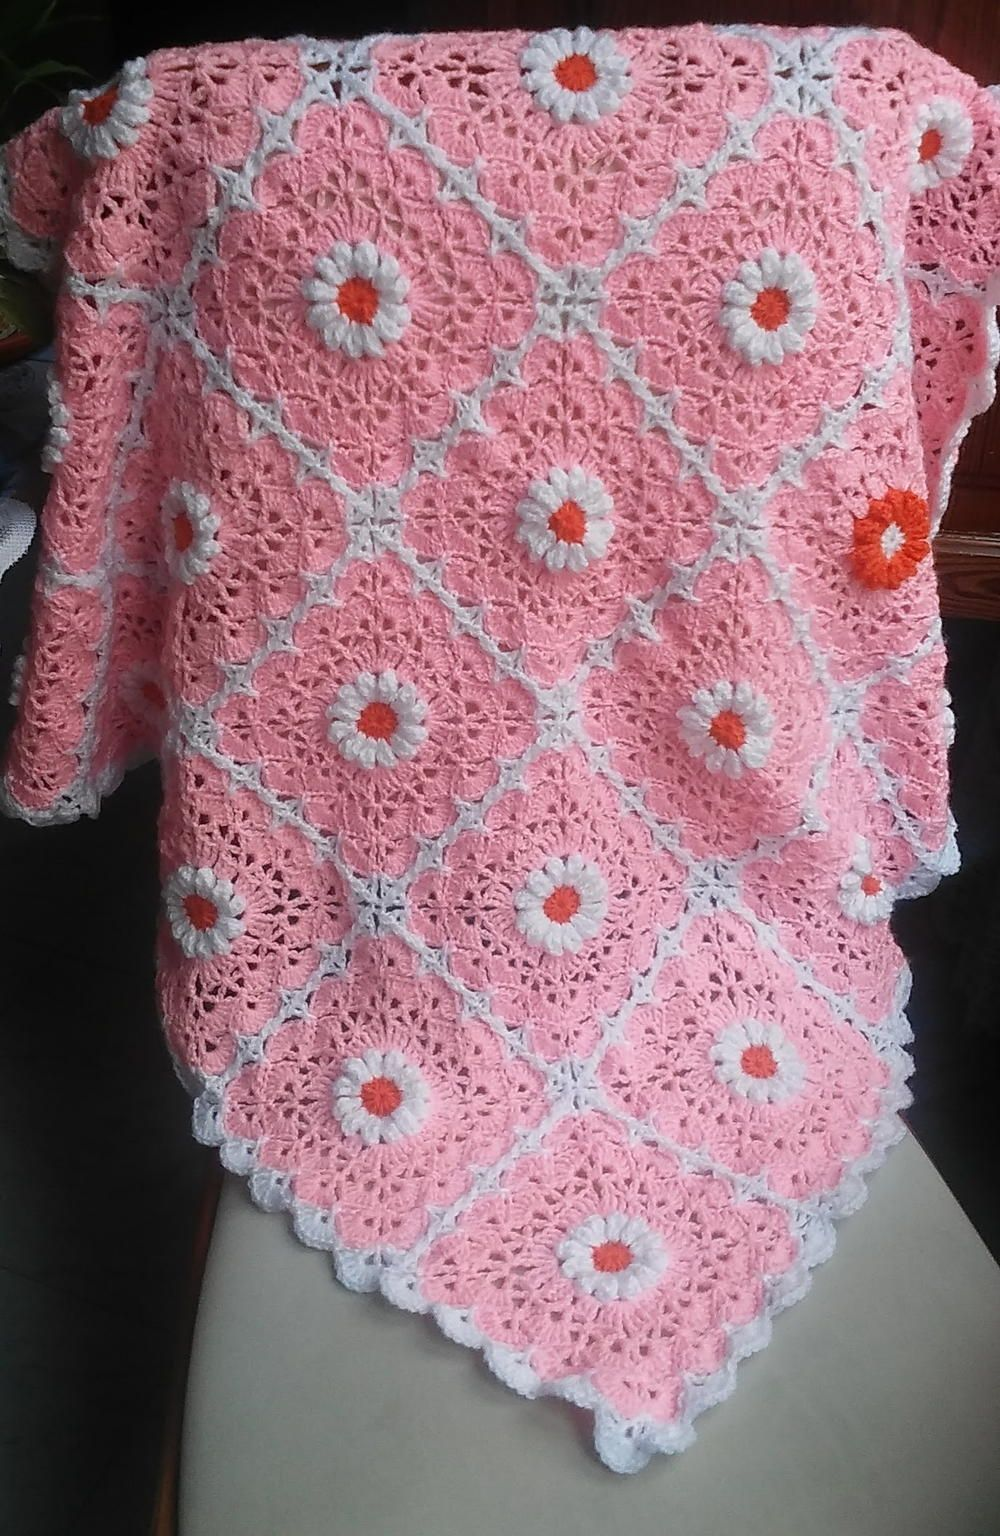 Pink Daisy Crocheted Baby Blanket | Bebé de ganchillo, Mantas de ...